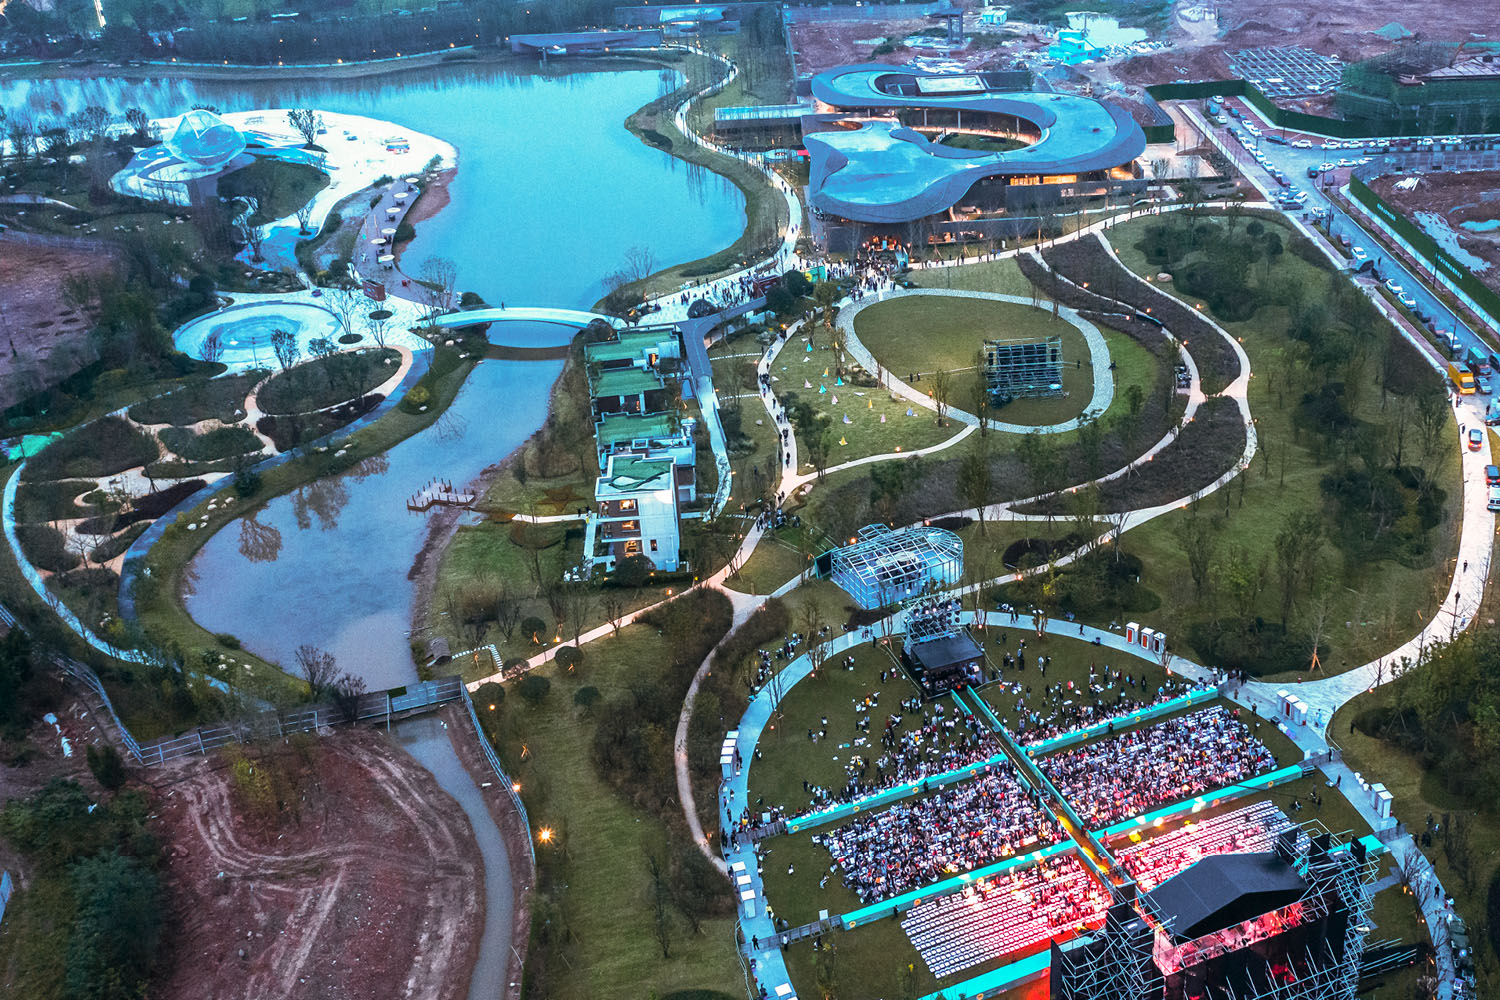 A LEISURE PARK FOR COMMUNITIES: Upon its opening in the fall, 2019, Tianfu City has become a magnet for community events such as music festivals. SASAKI